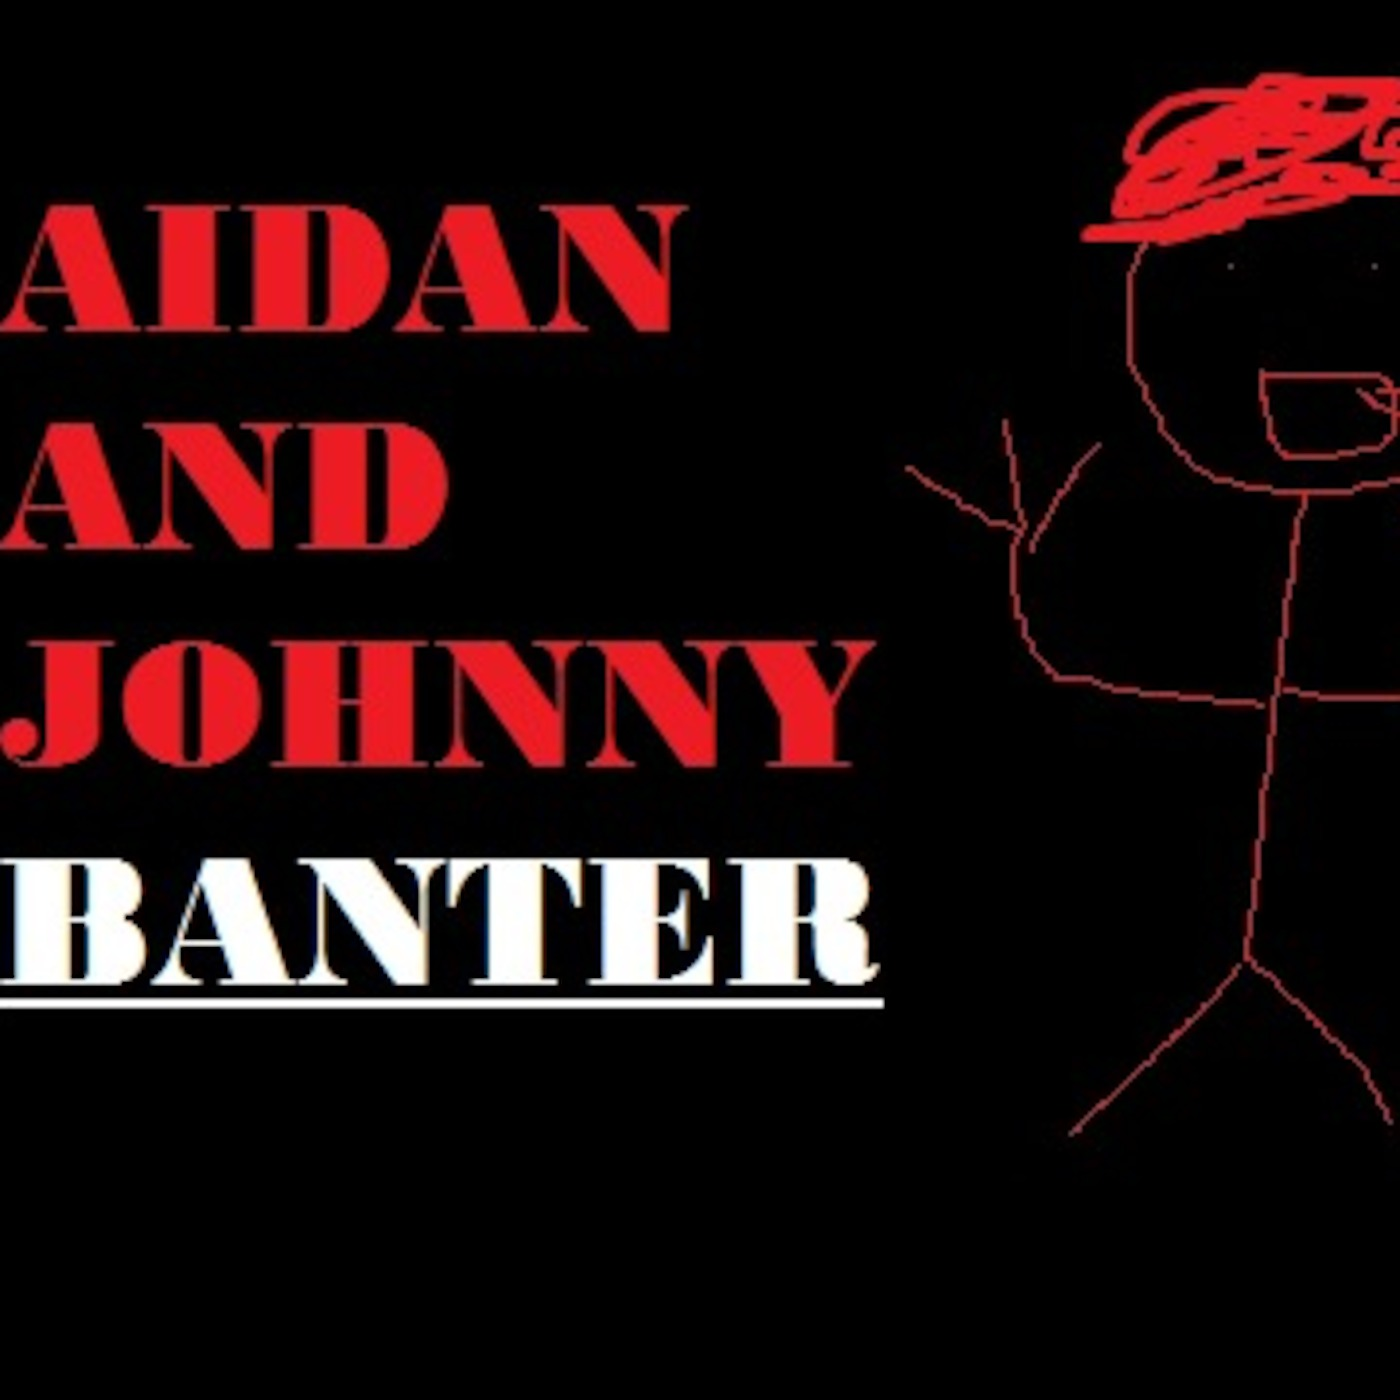 Aidan & Johnny Banter